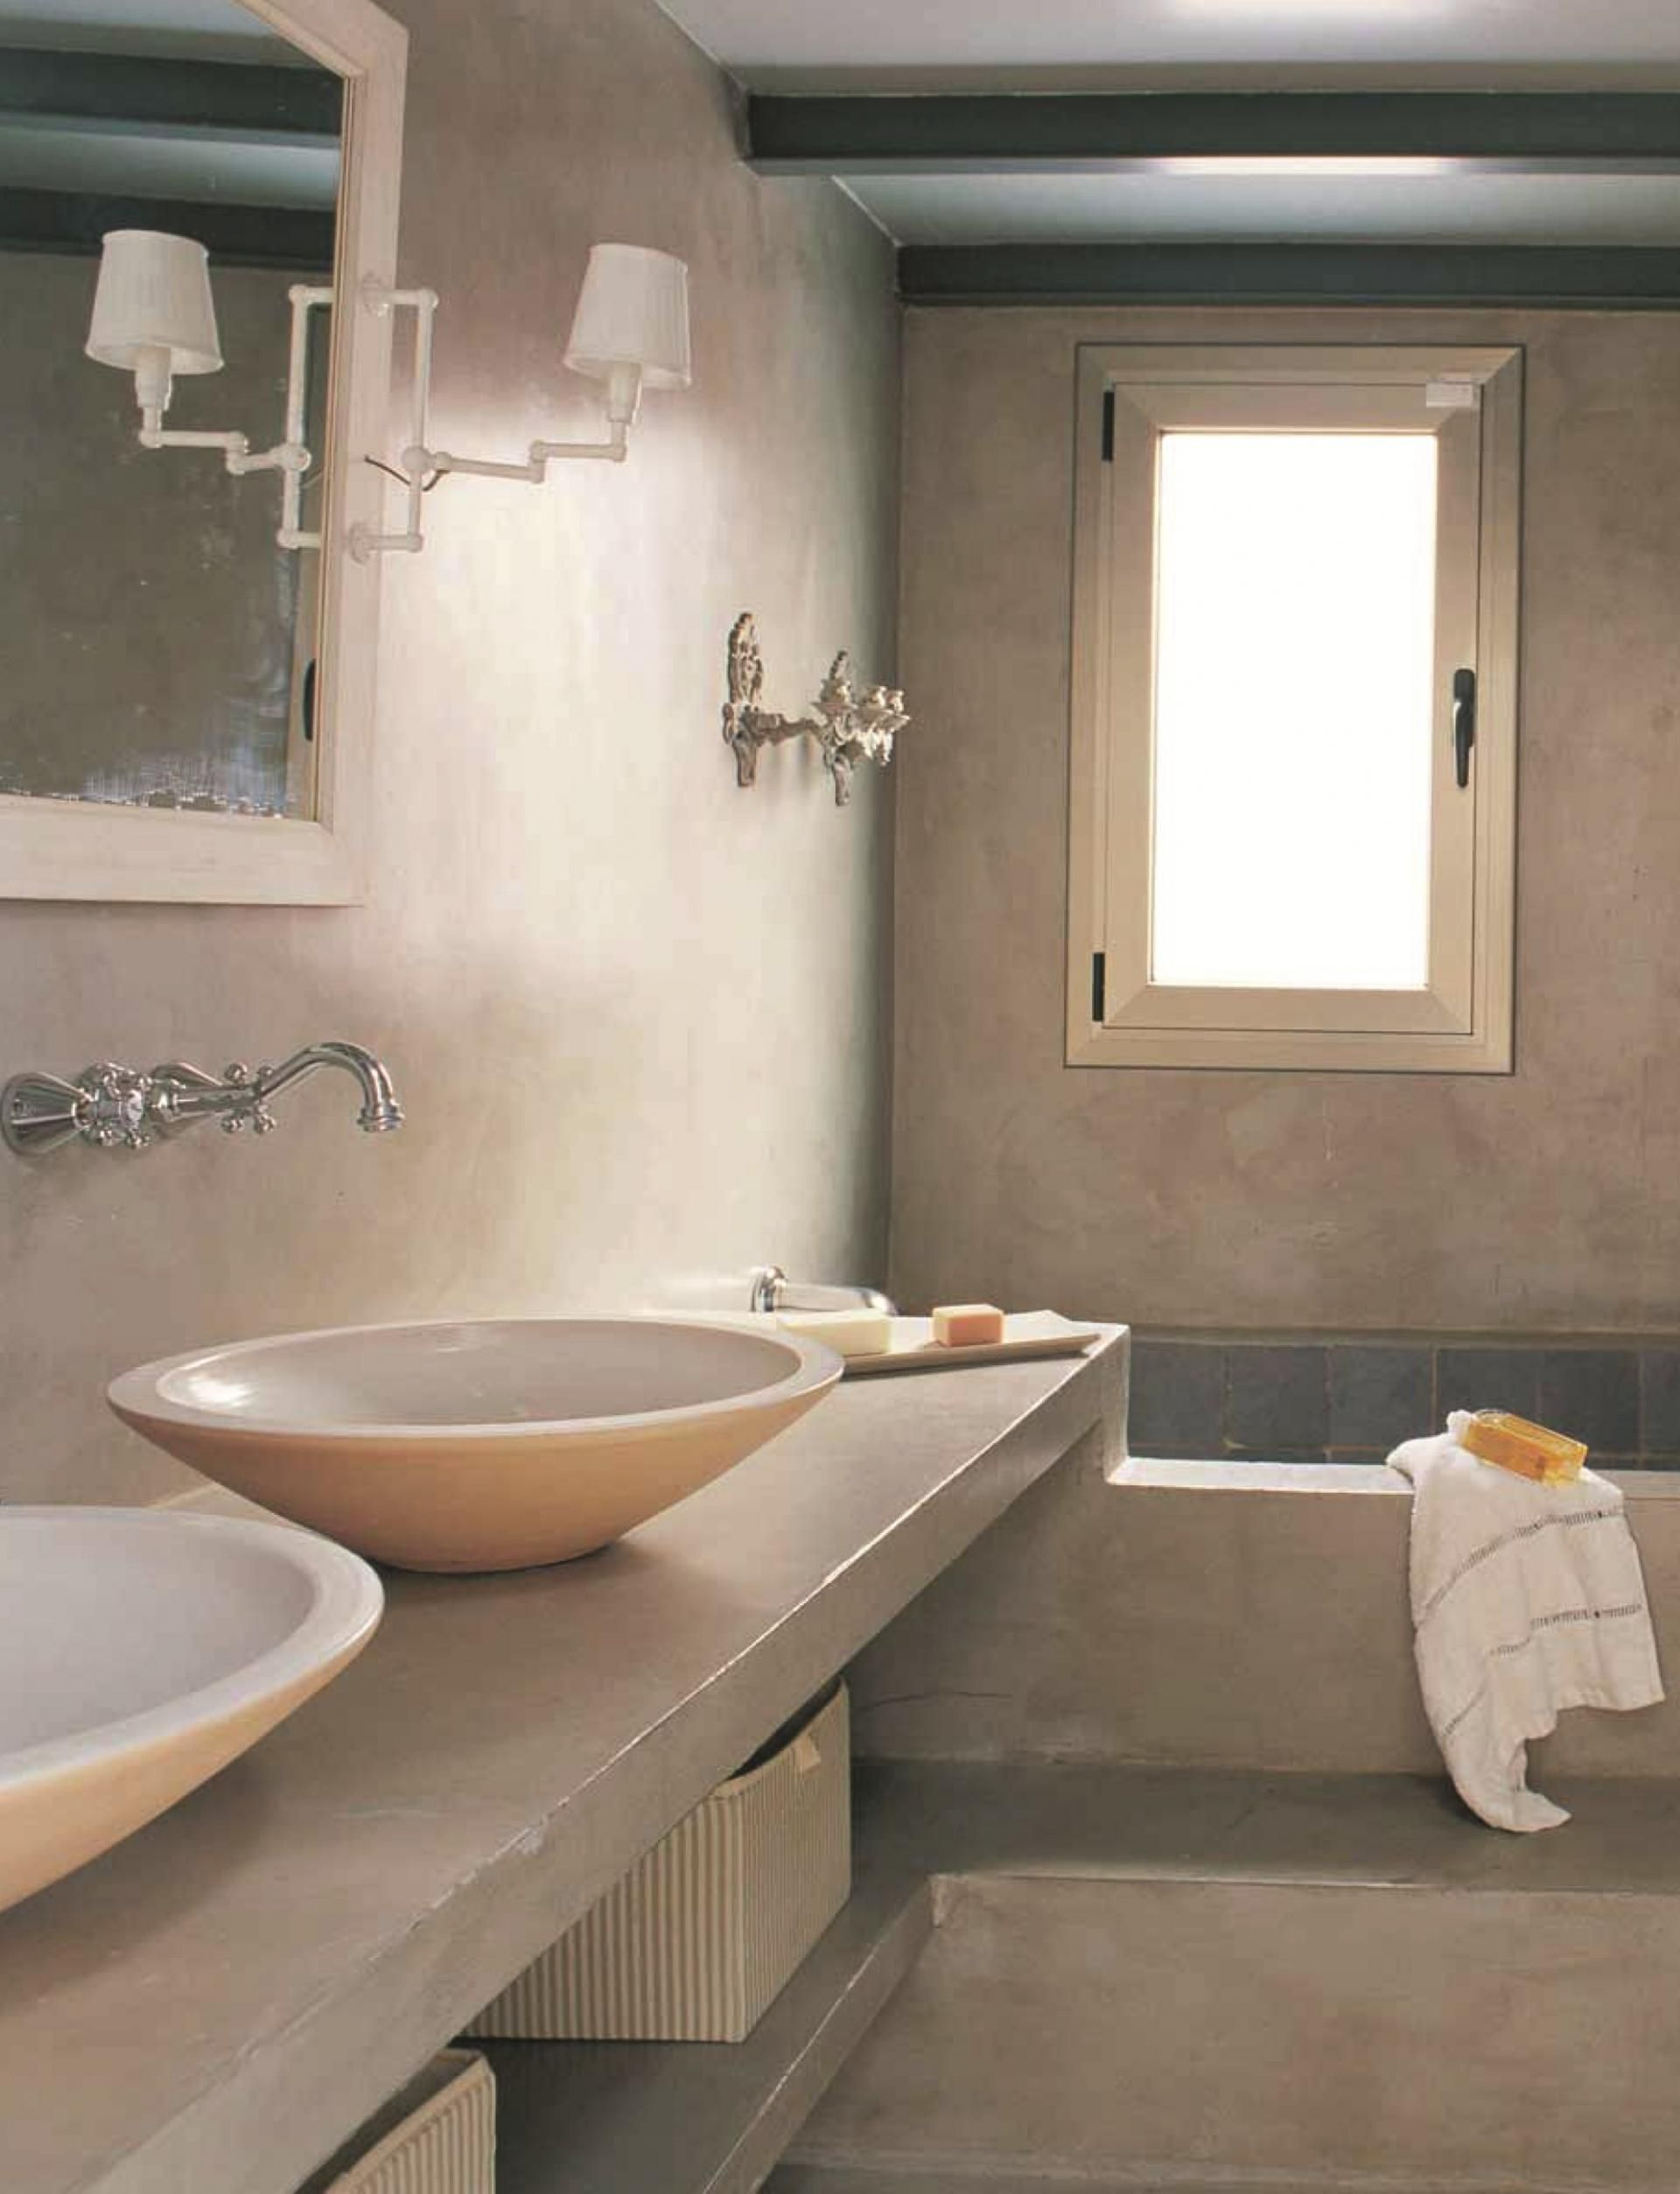 Microcemento at bathroom ideas para ba os pinterest for Revestimiento cemento pulido banos